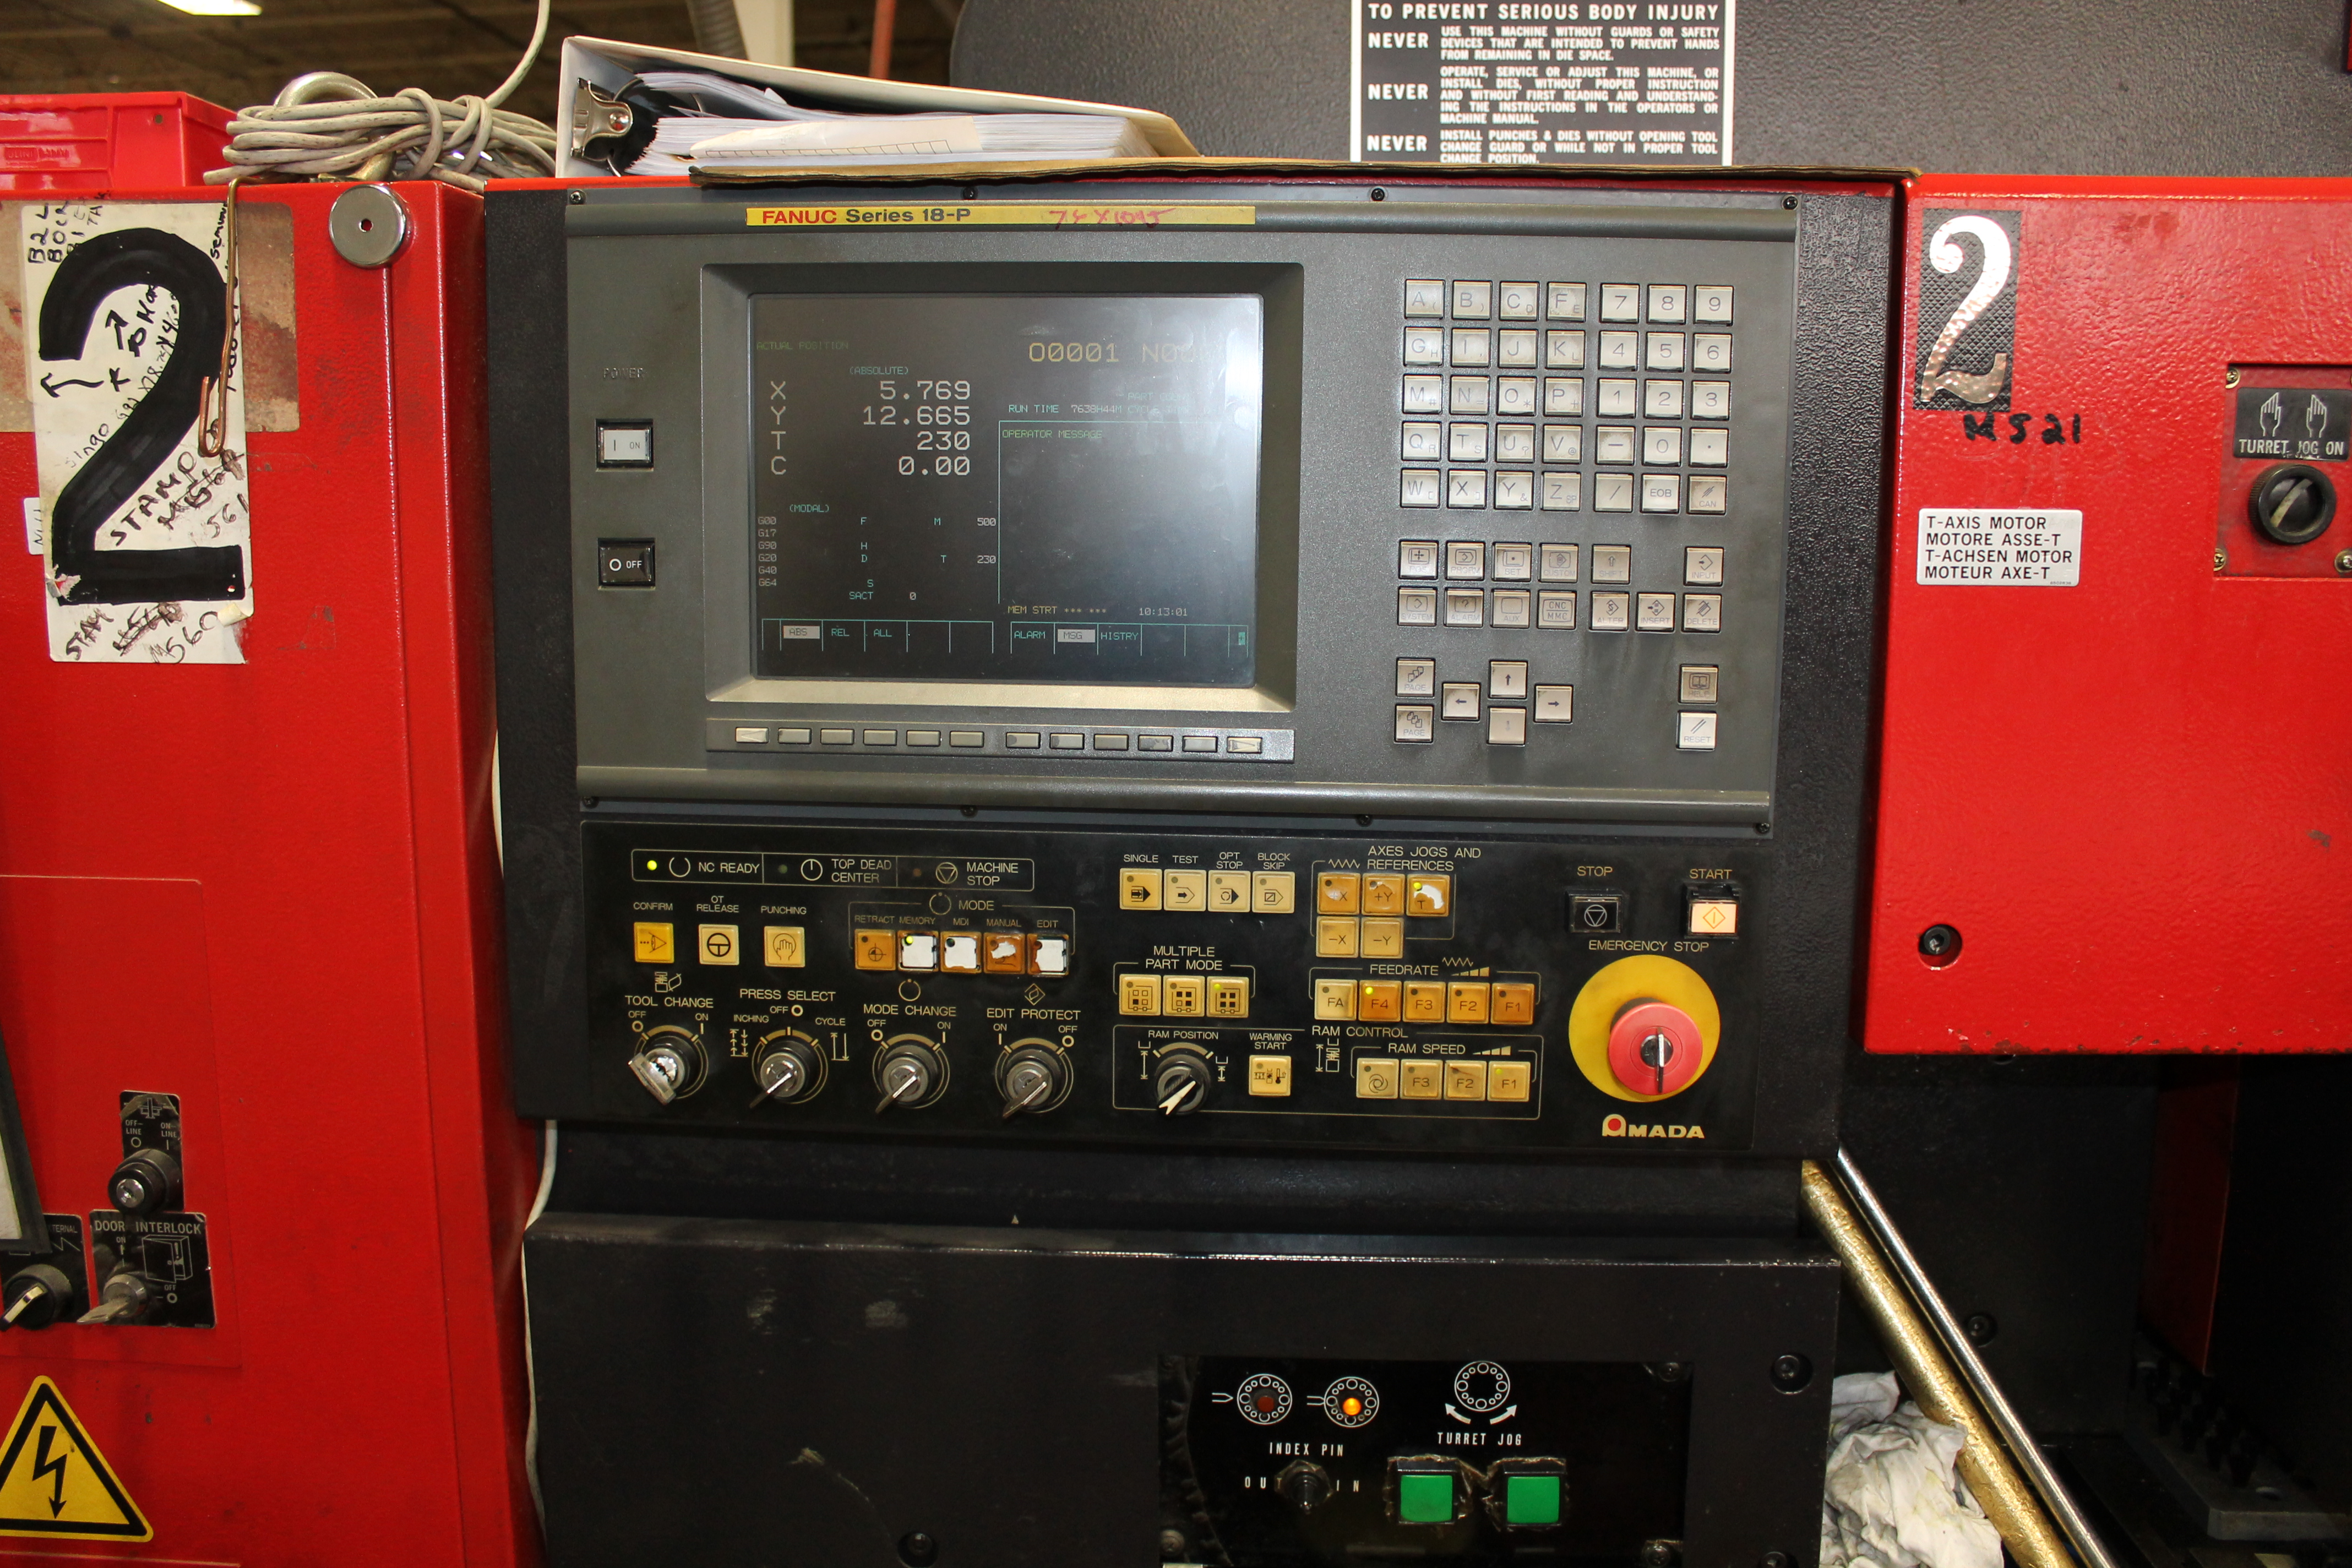 Used Amada Turret Punch vipros 358 king II For Sale